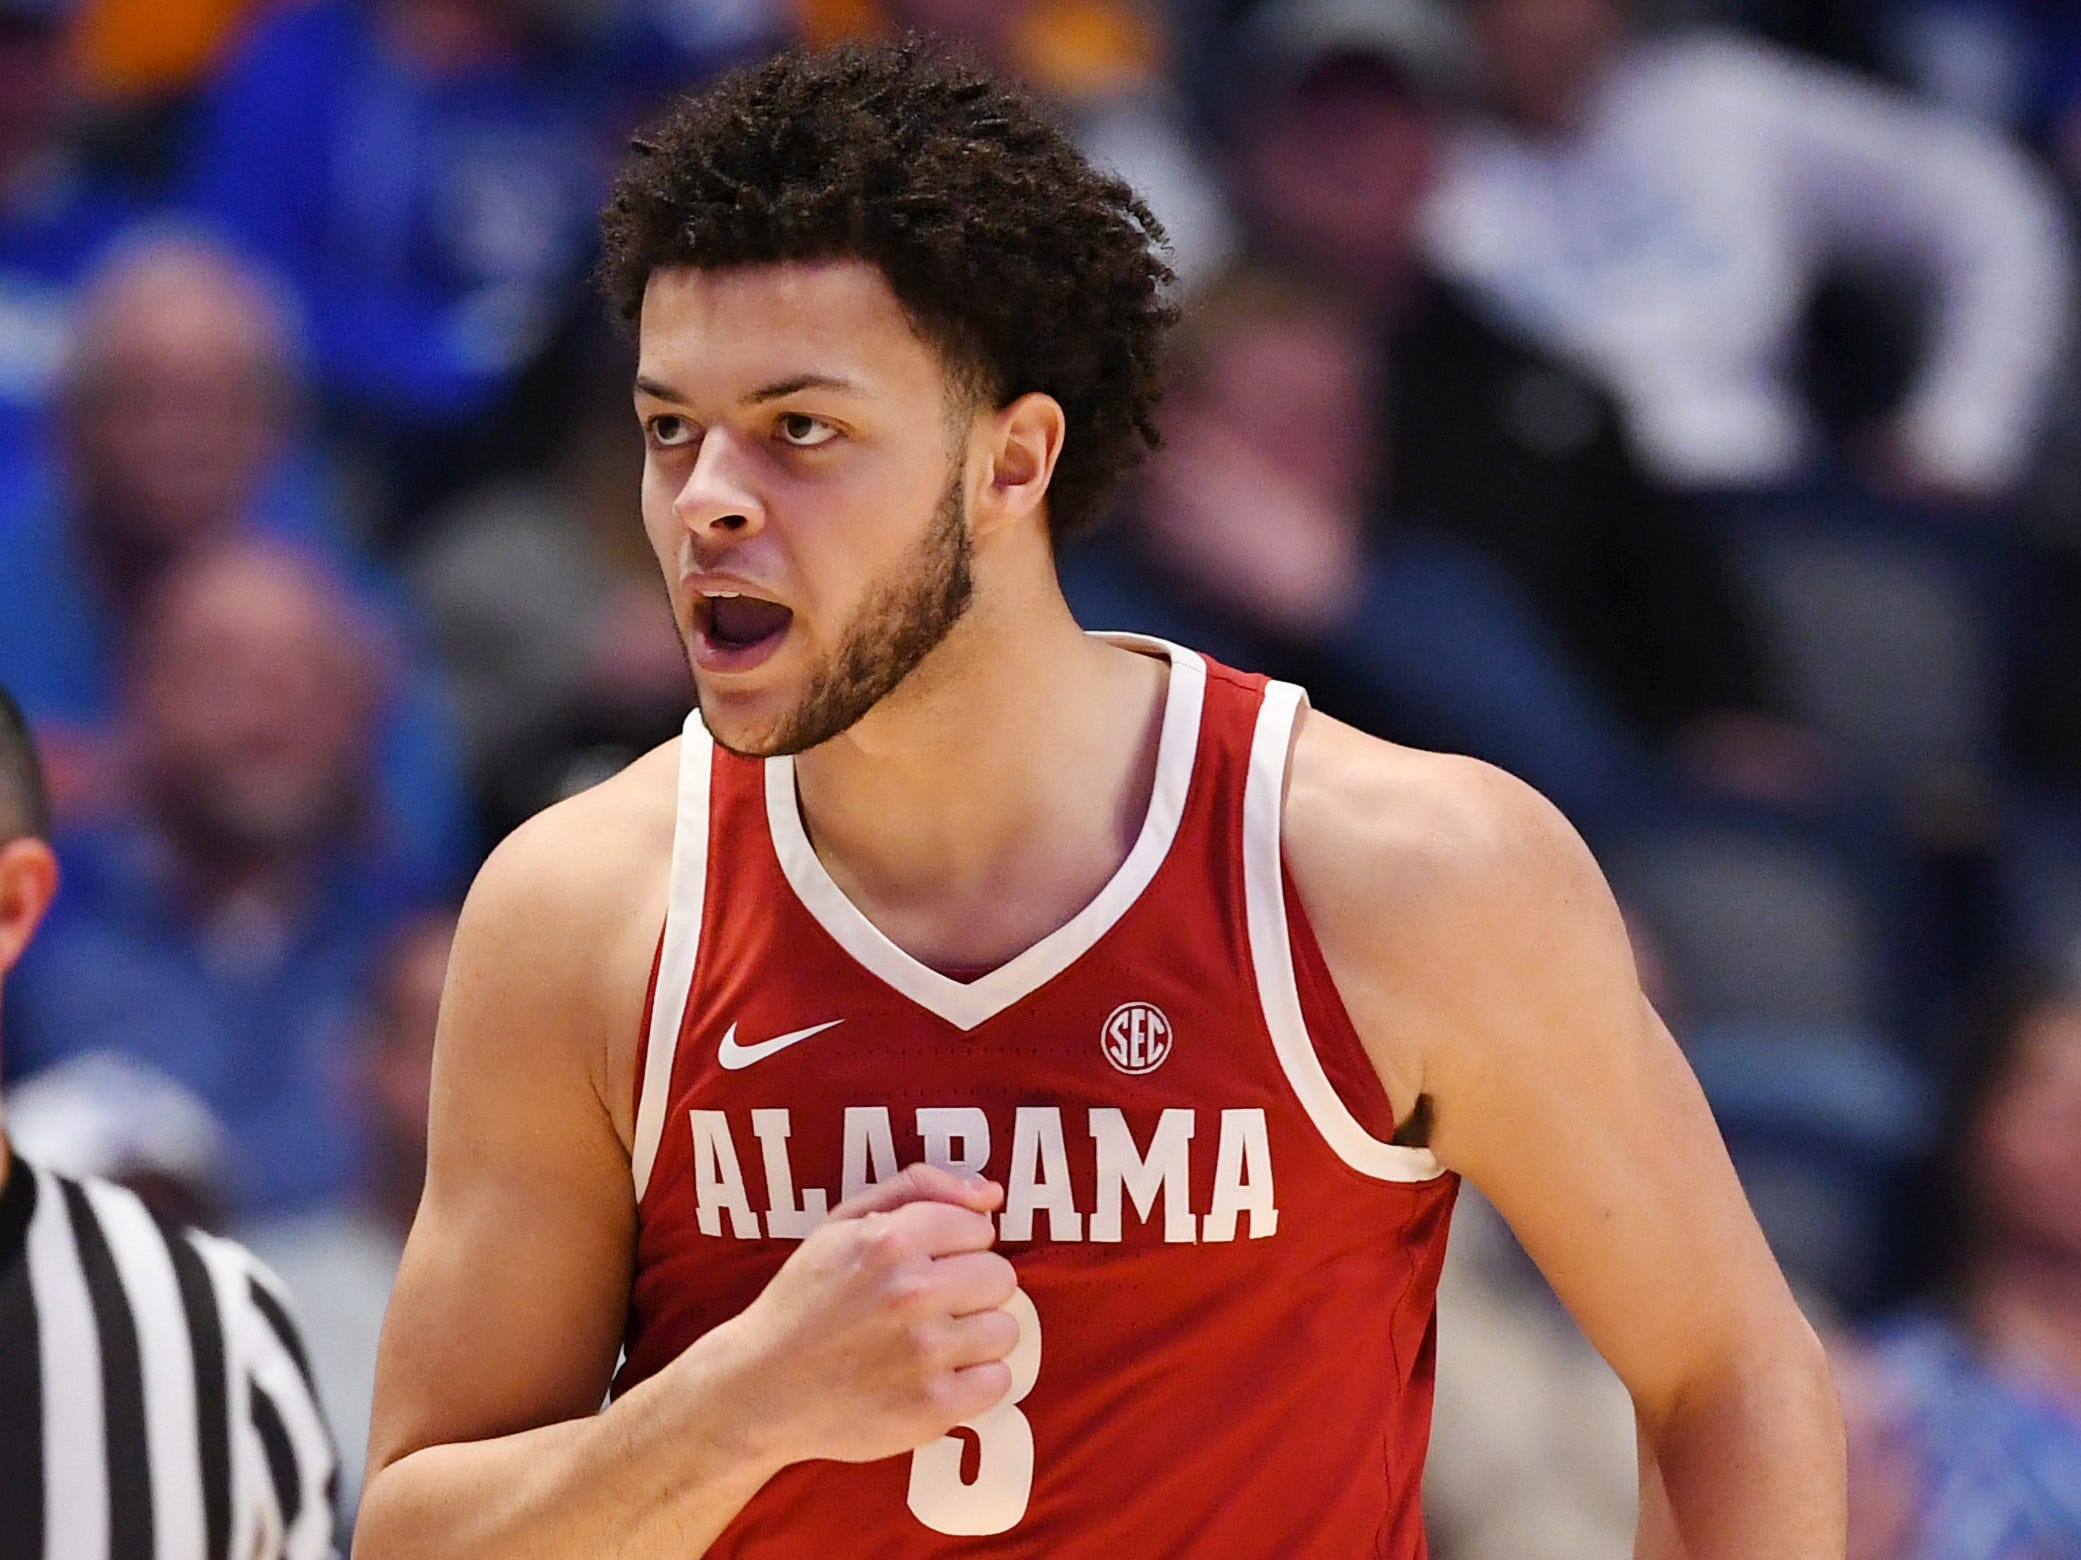 Mar 15, 2019; Nashville, TN, USA; Alabama Crimson Tide forward Alex Reese (3) celebrates after scoring a three point basket against the Kentucky Wildcats during the first half of the SEC conference tournament at Bridgestone Arena. Mandatory Credit: Christopher Hanewinckel-USA TODAY Sports